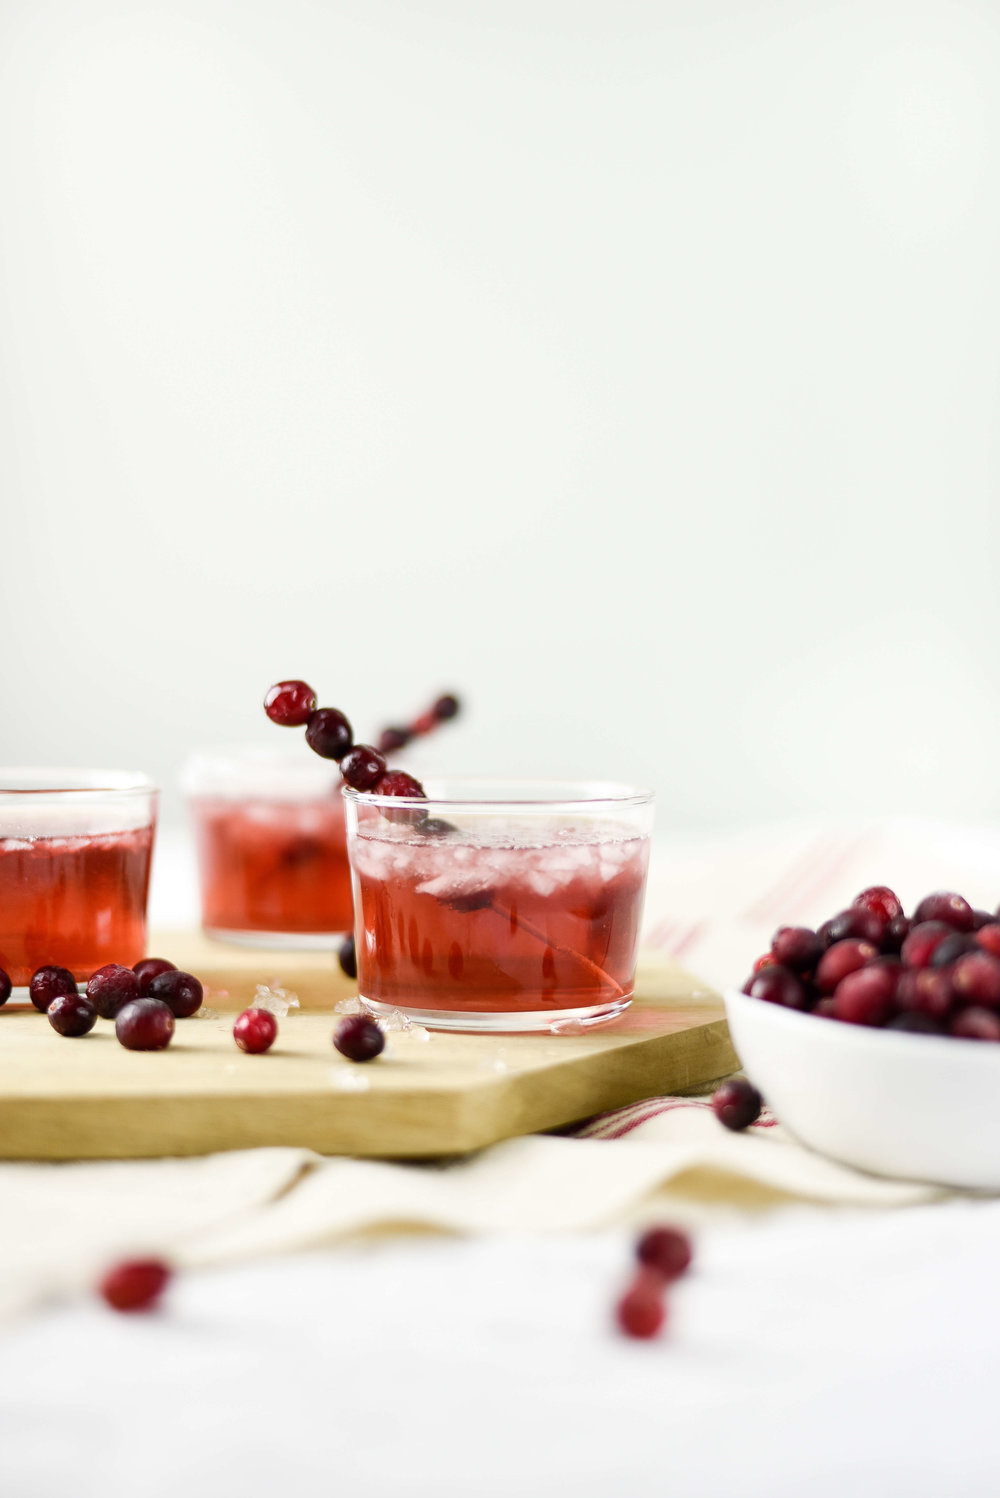 Need some fall cocktails for Thanksgiving? This spiced cranberry vodka cocktail is perfect! boxwoodavenue.com